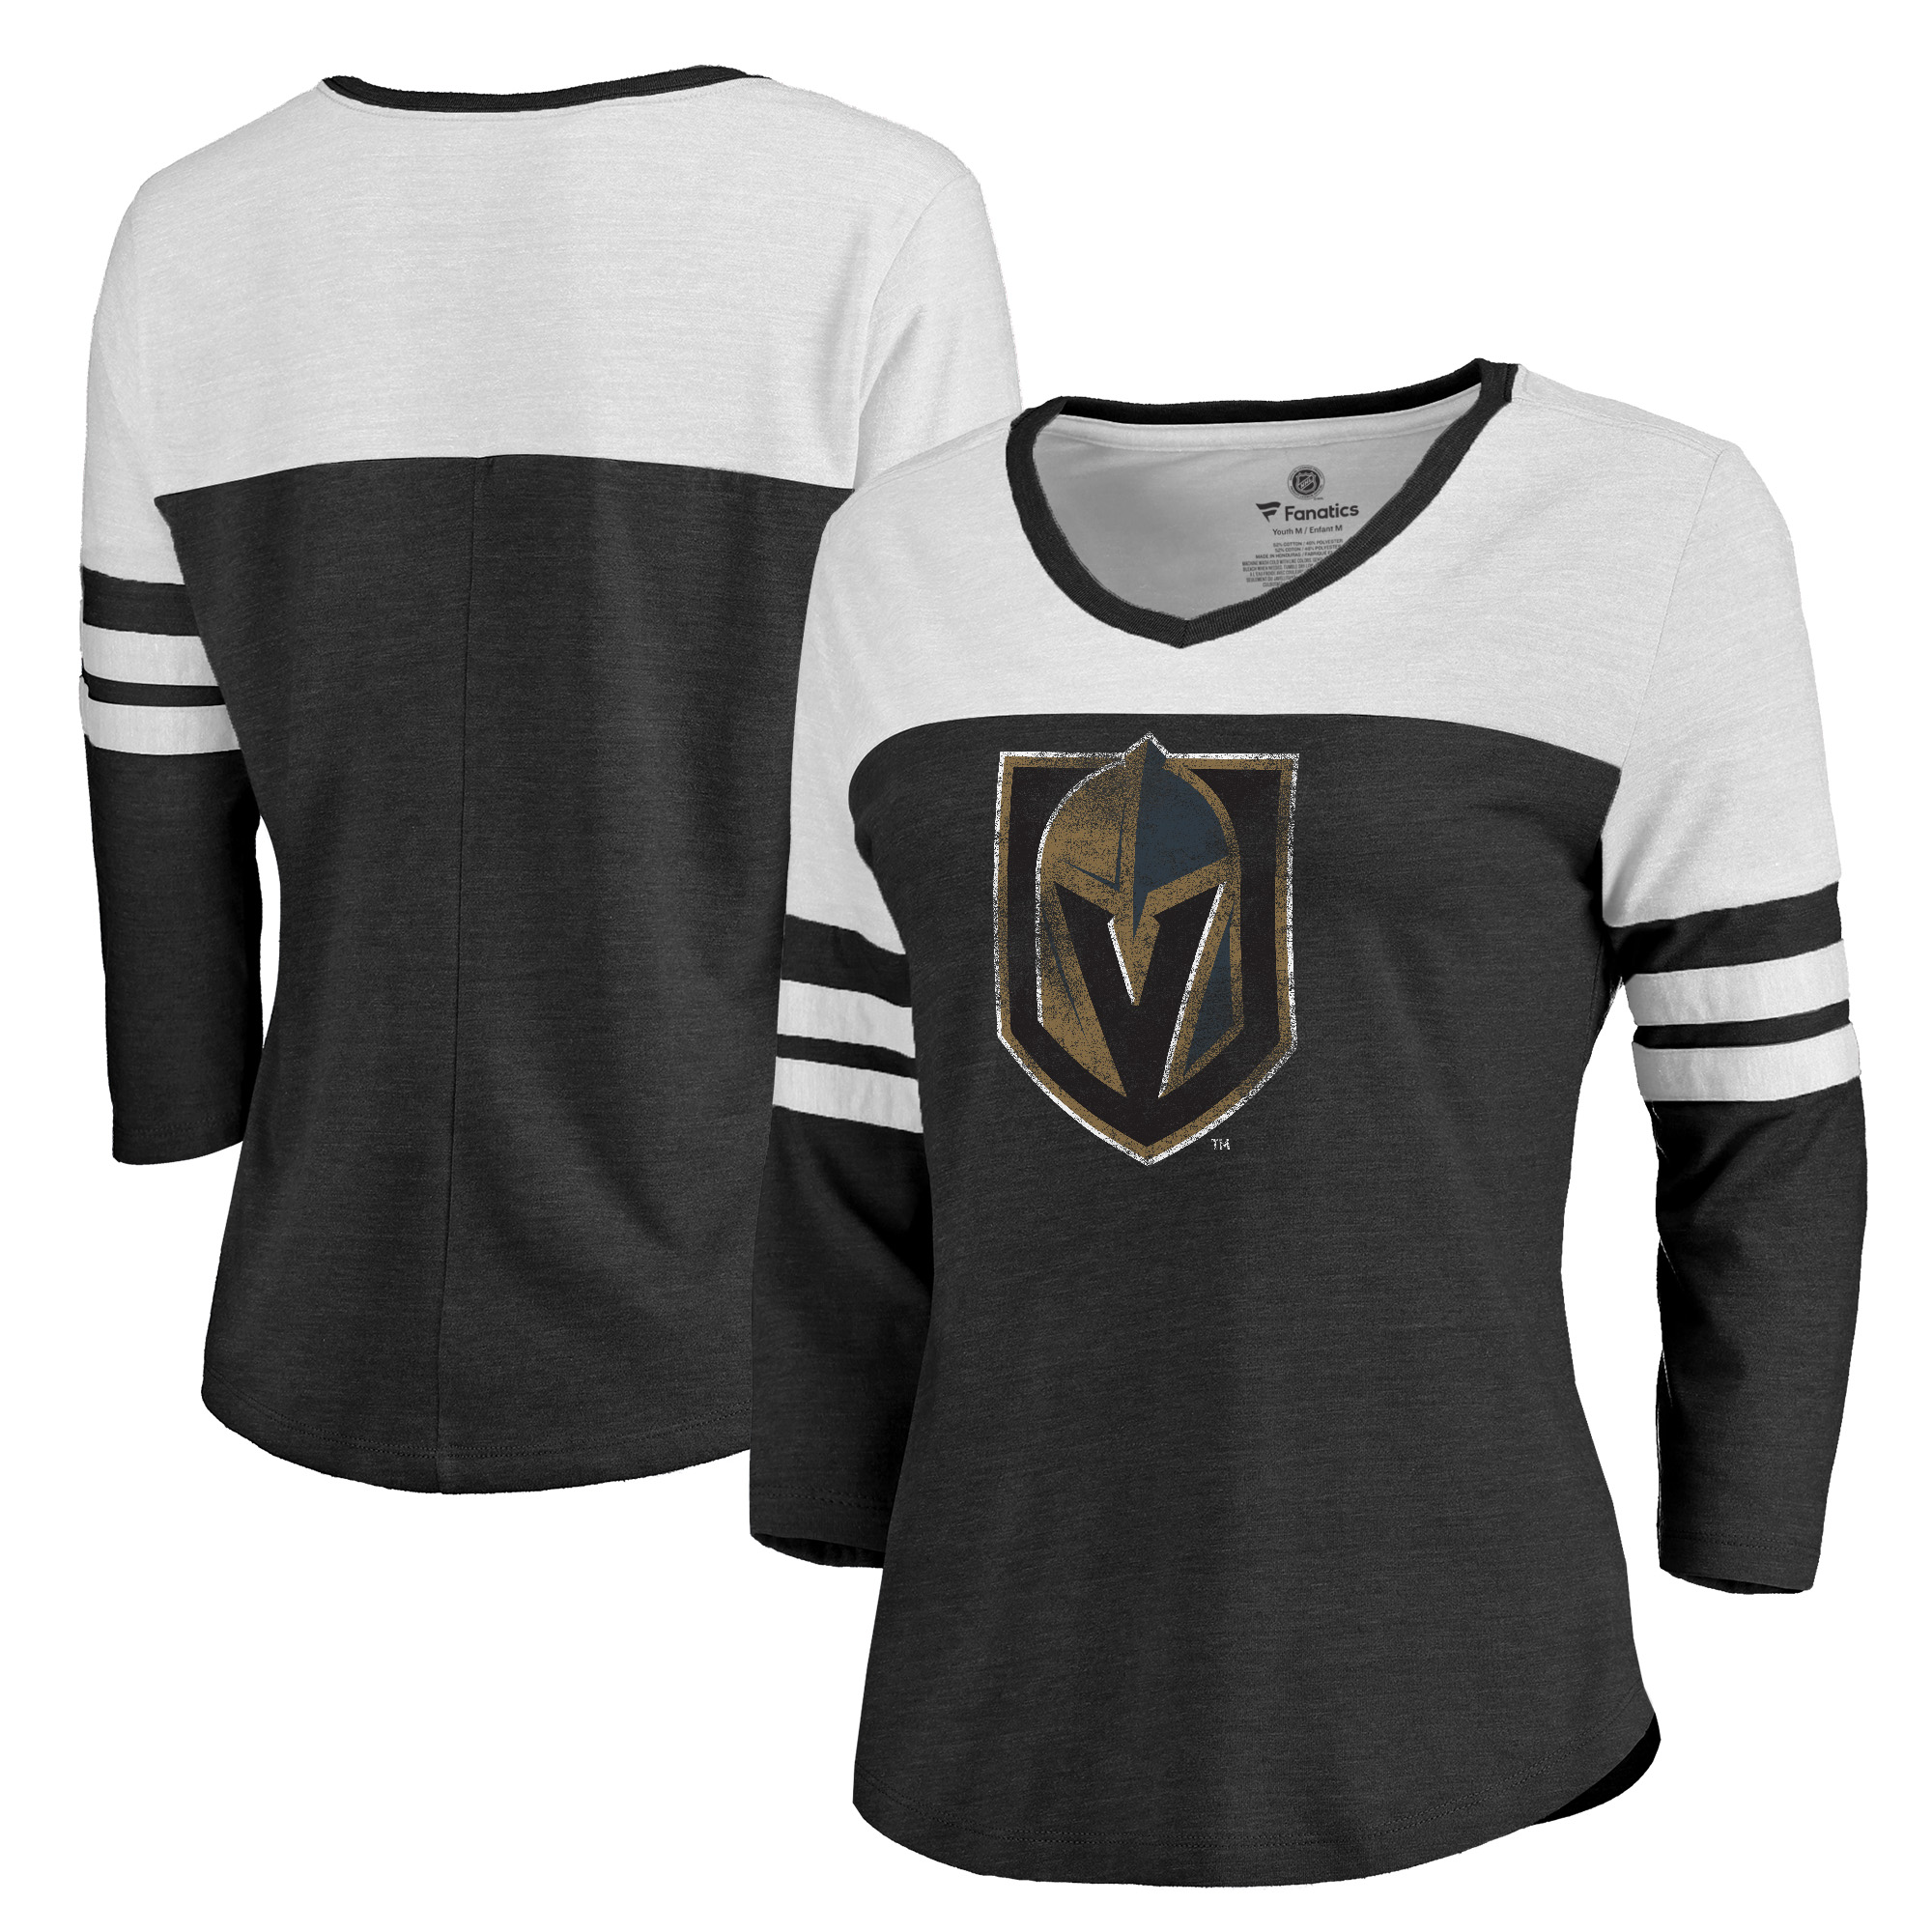 Vegas Golden Knights Fanatics Branded Women's Primary Logo Distressed 3/4-Sleeve Raglan Tri-Blend T-Shirt - Heathered Black/White